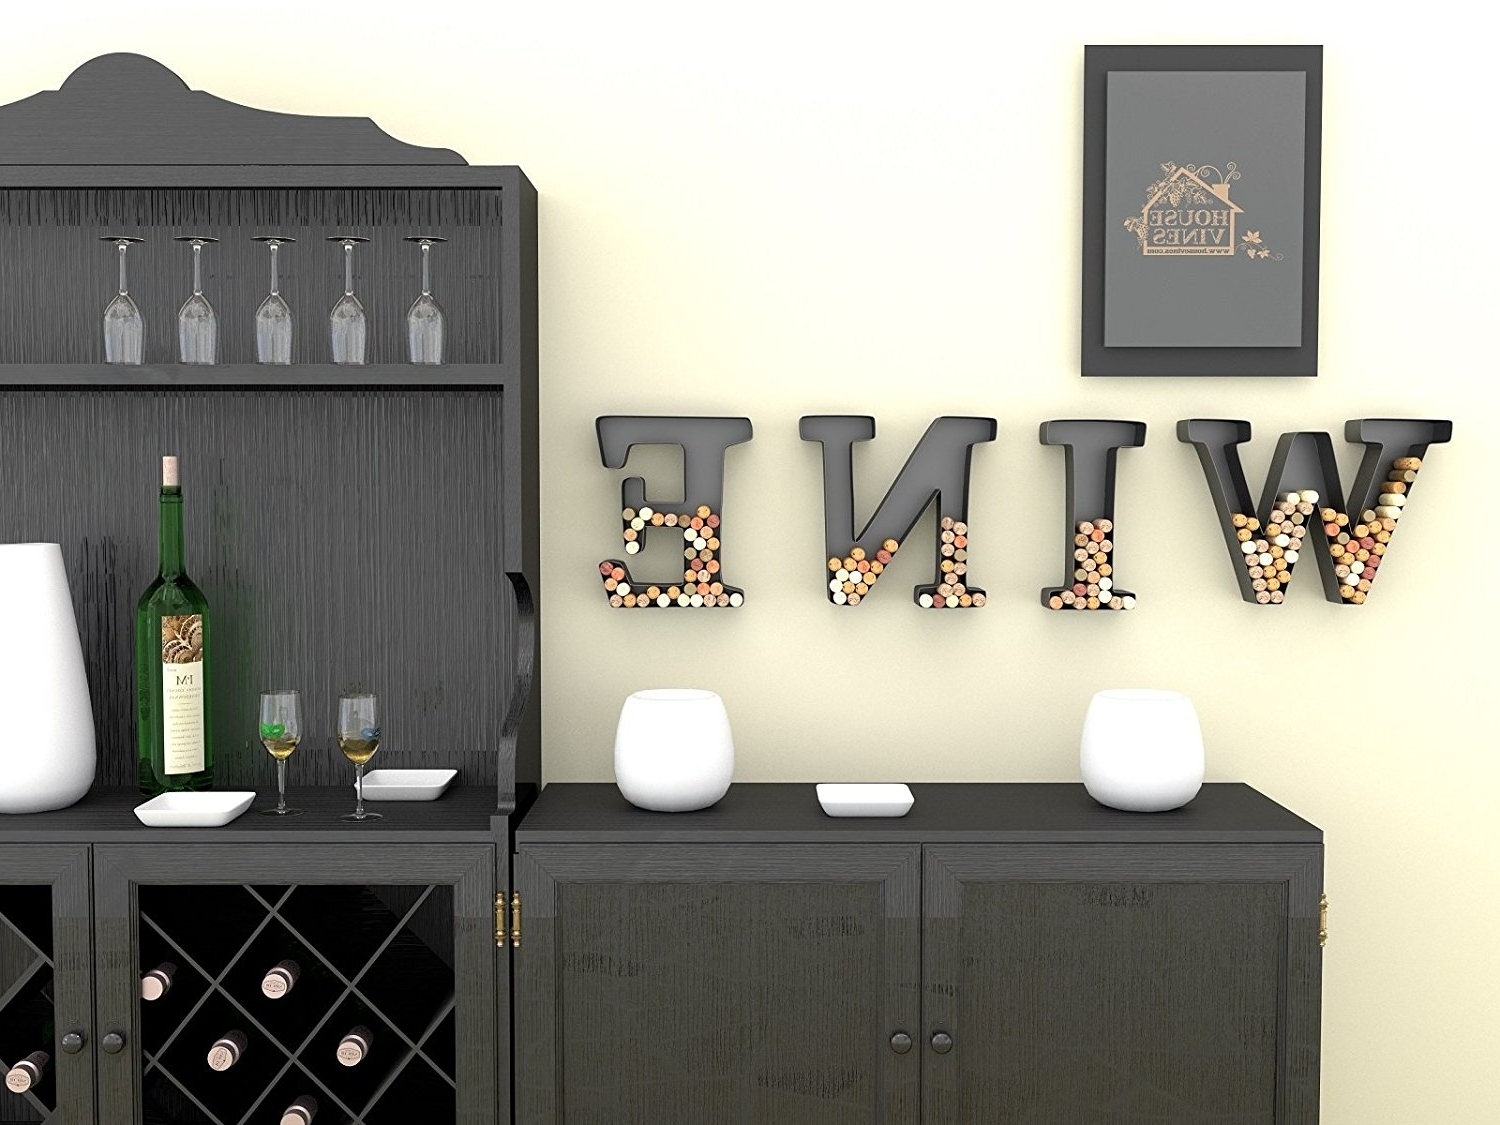 Wine Themed Wall Art Inside Well Known Amazon: Wine Letter Cork Holder Art Wall Décor ~ Metal ~ All (View 14 of 15)